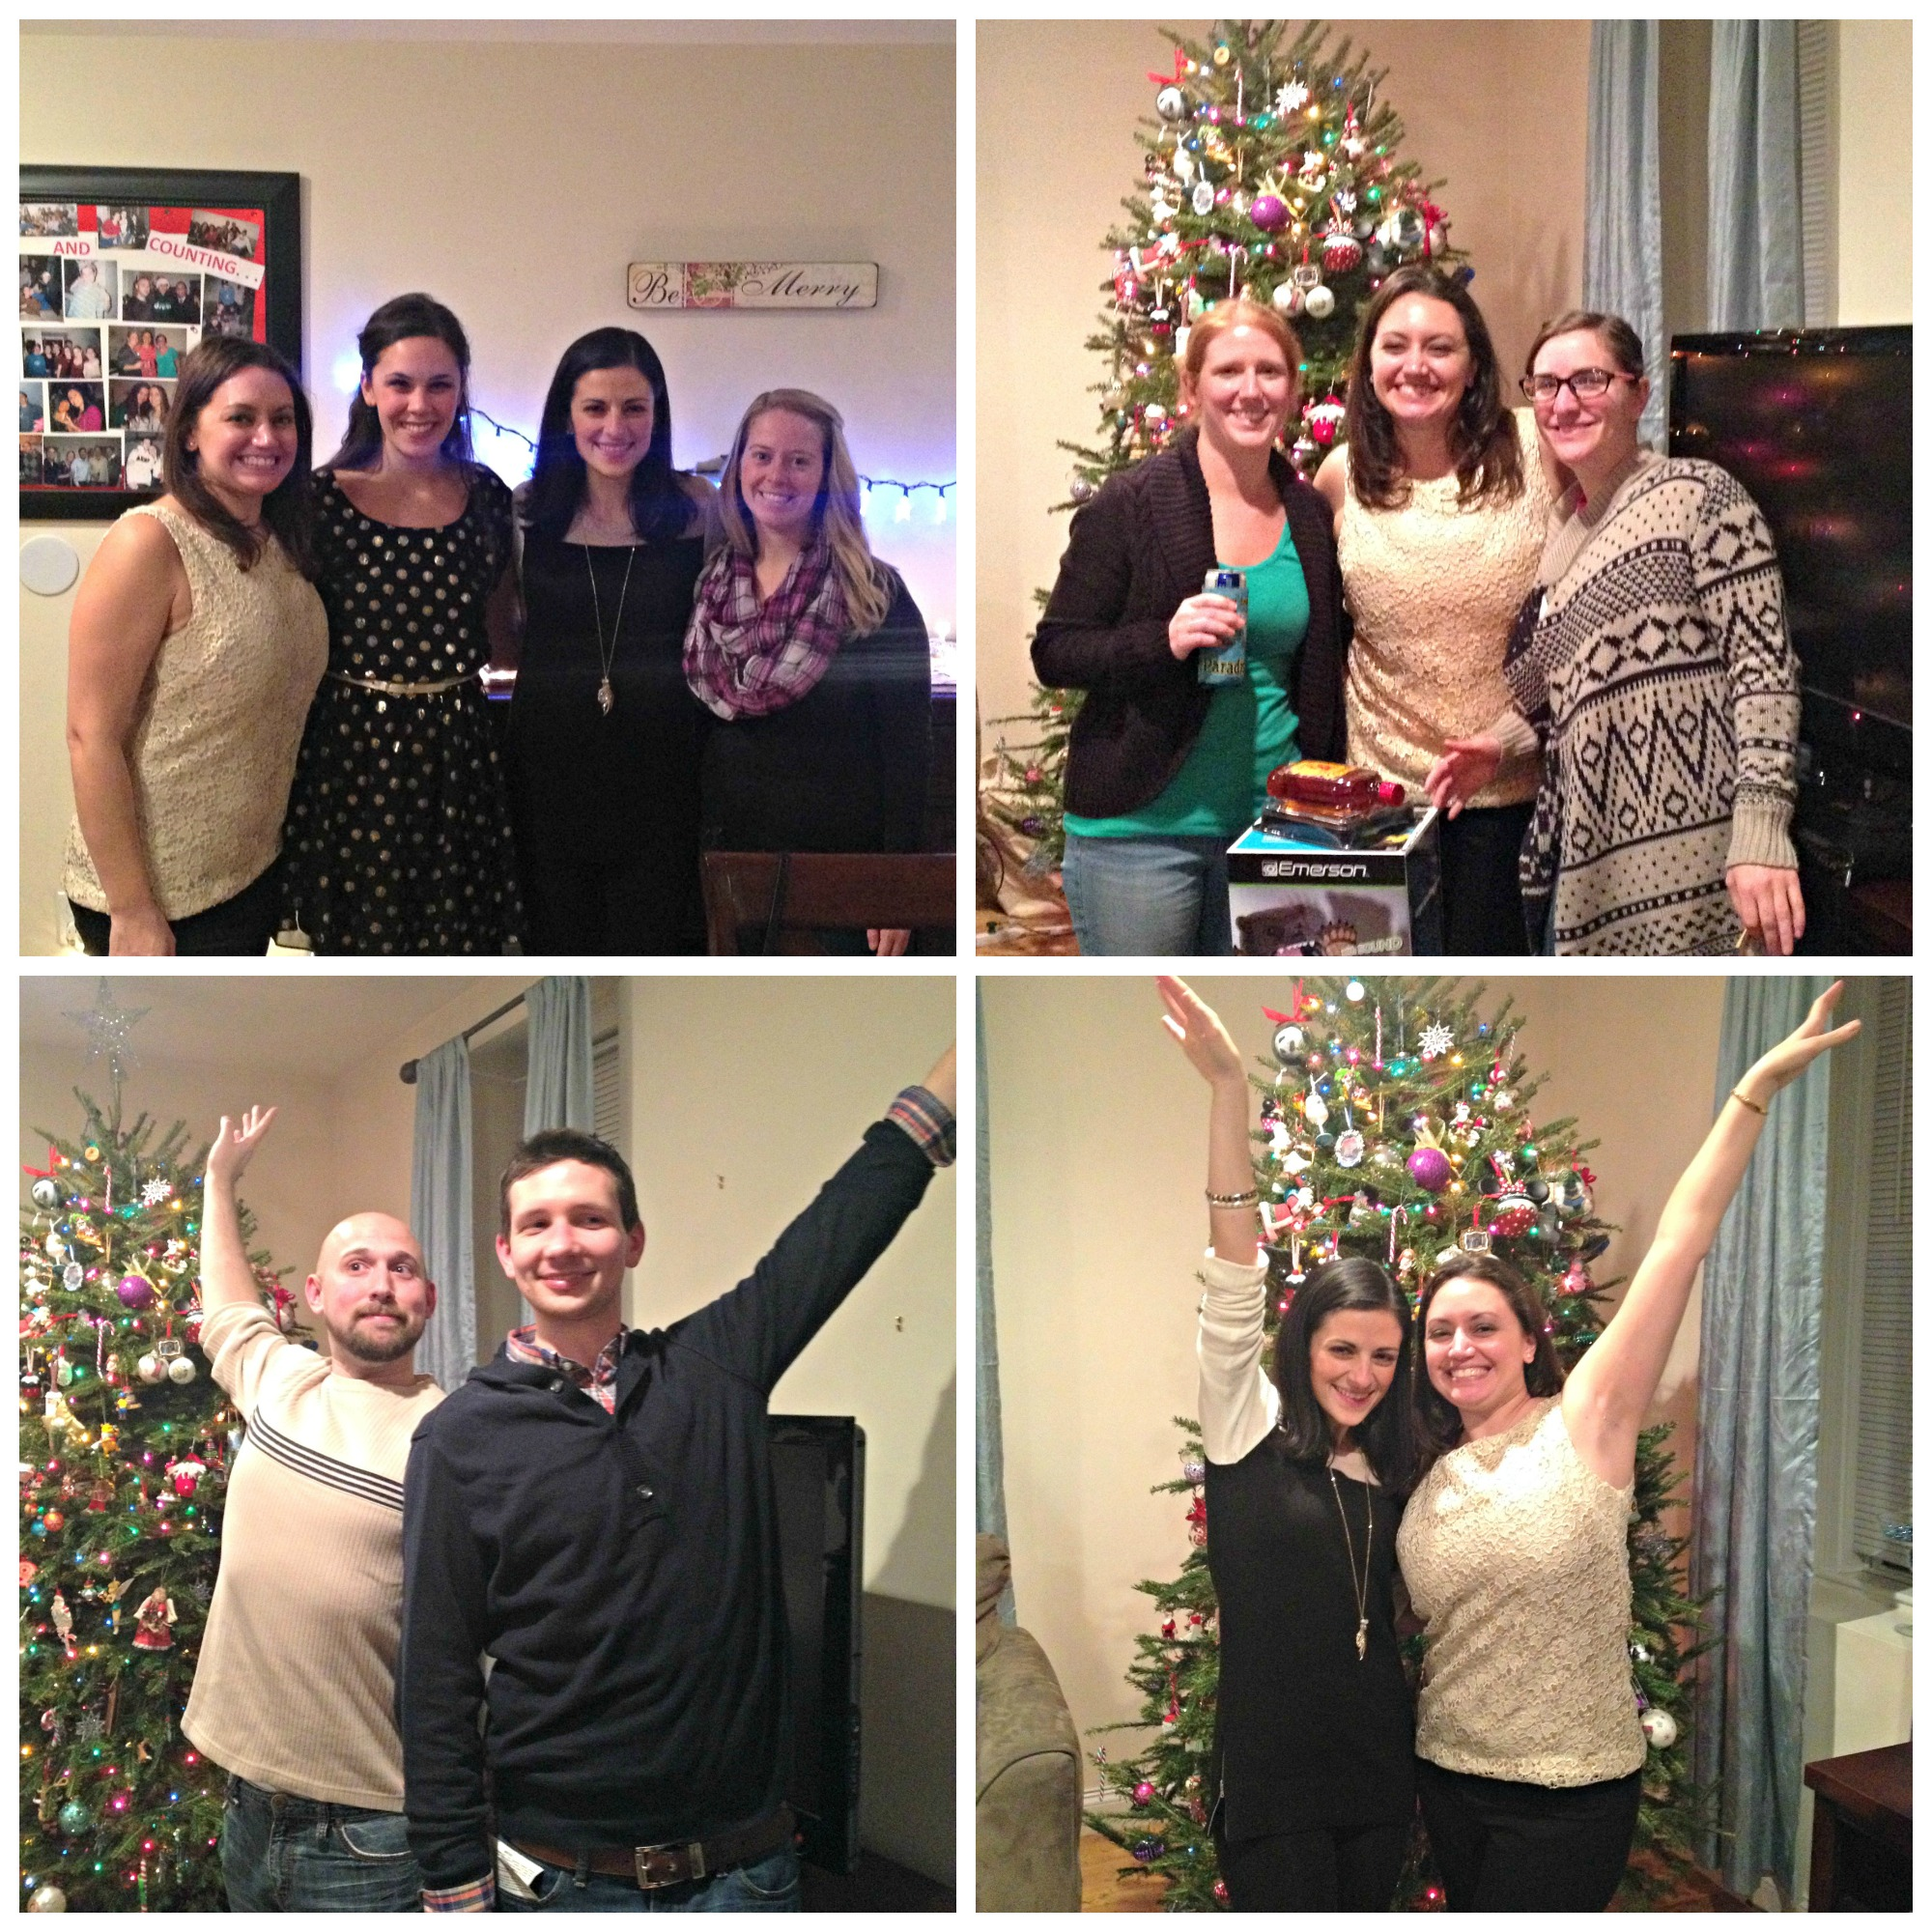 Shannons Christmas Party 2014